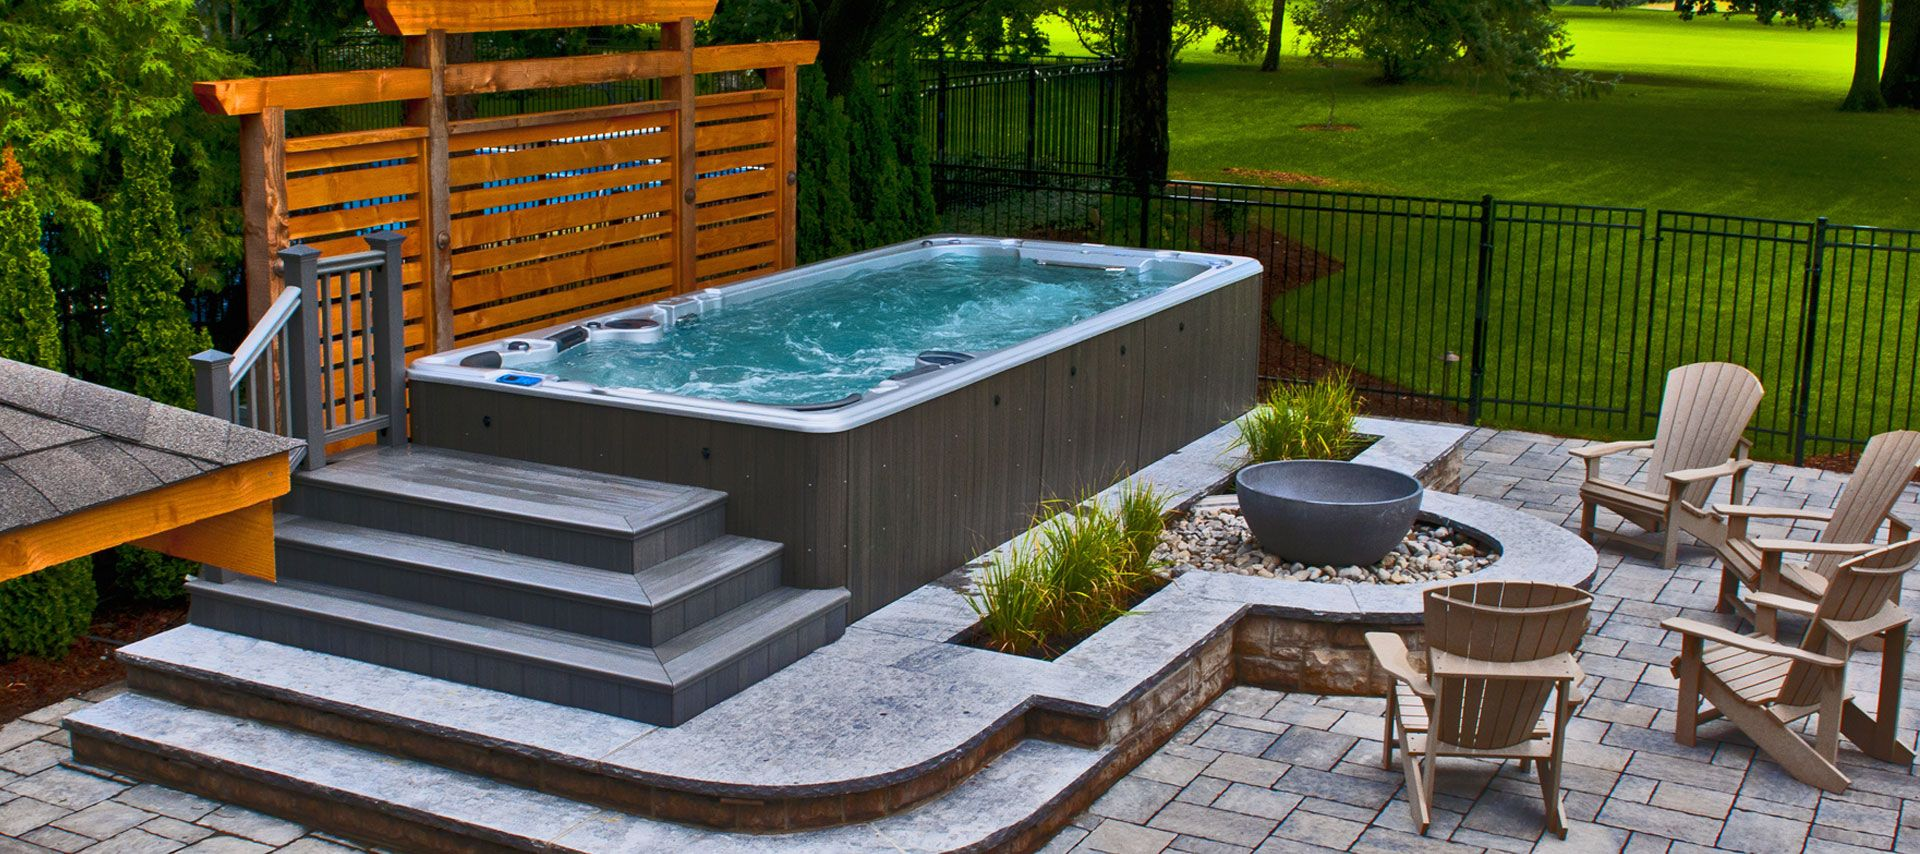 Hydropool Hot Tubs, Swim Spas and Accessories Hot tub